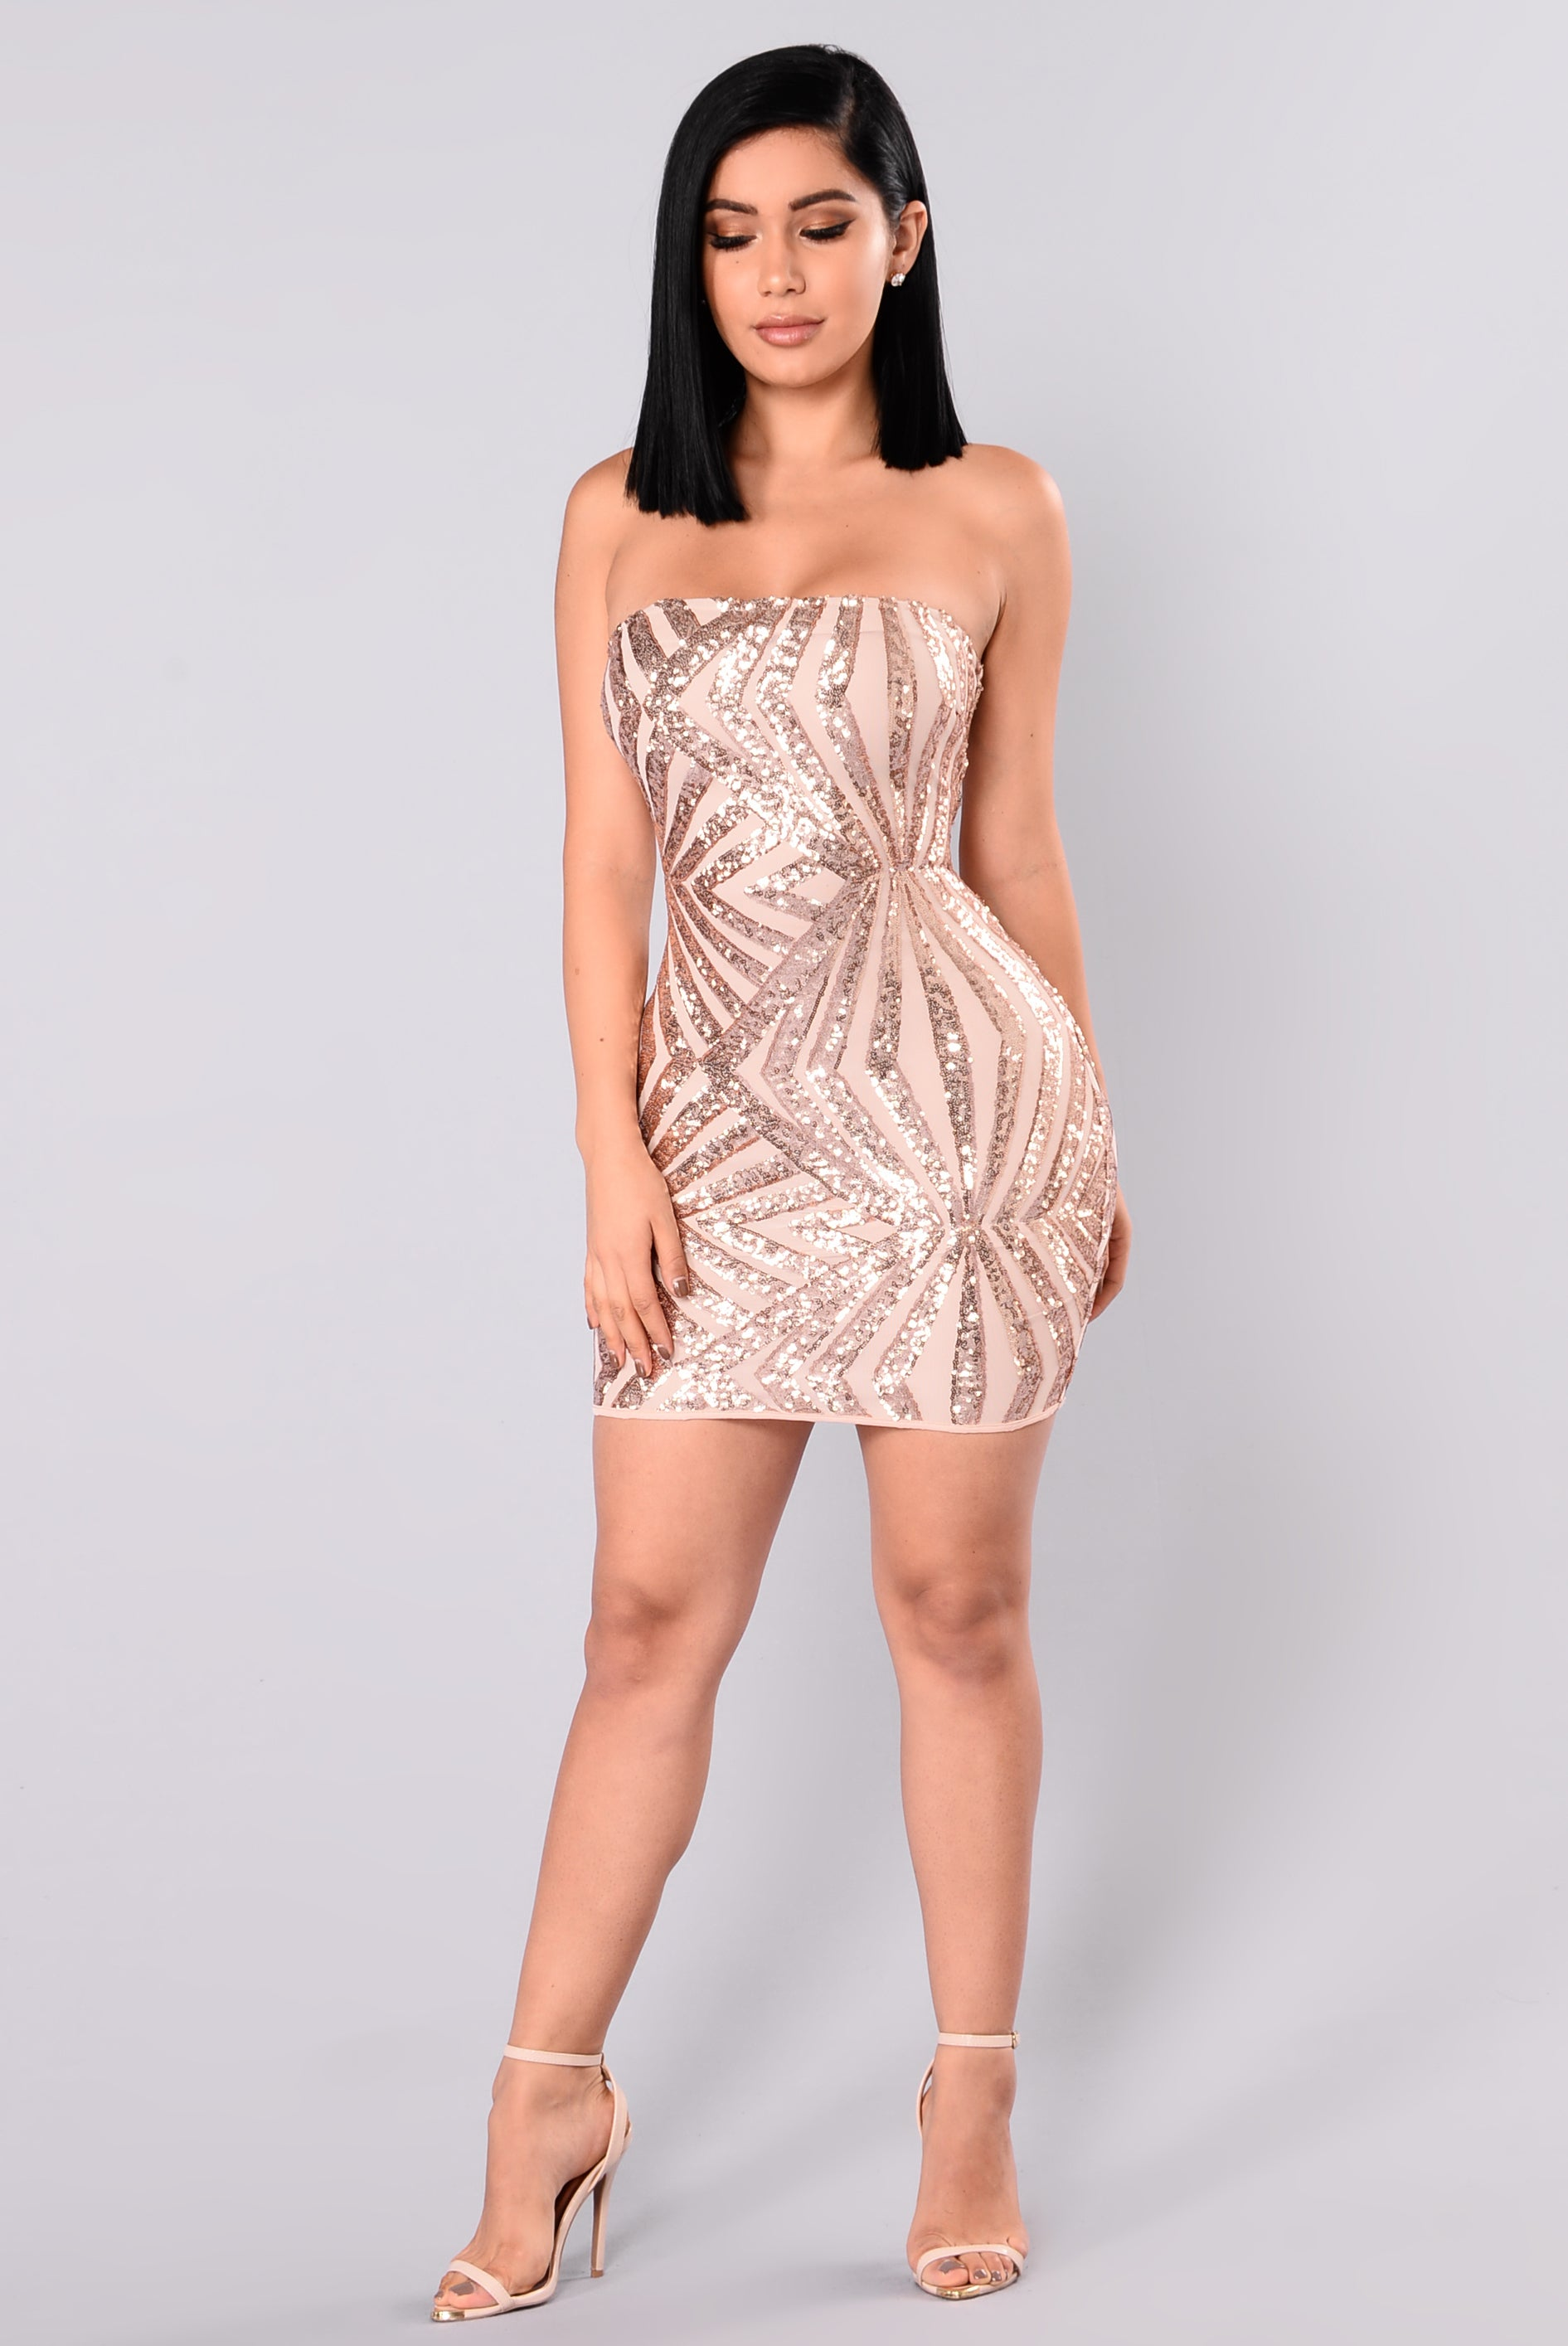 She S A Diva Sequin Dress Rose Gold Nude